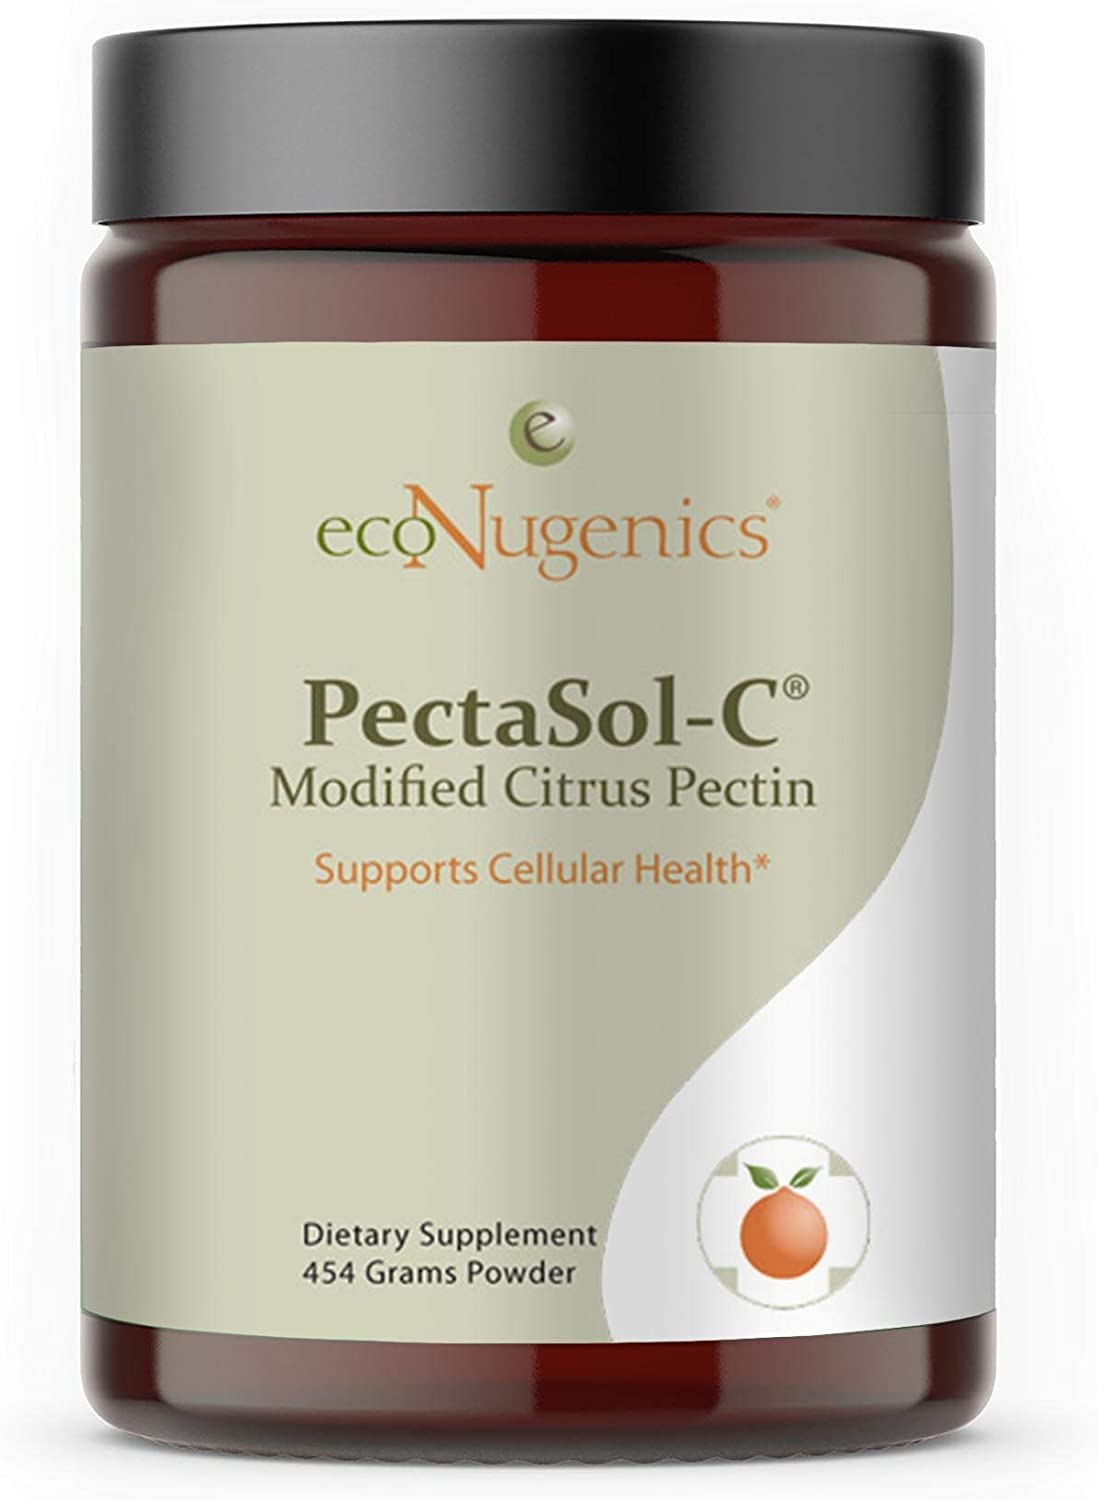 EcoNugenics – PectaSol-C Modified Citrus Pectin - 454 Grams | Professionally Formulated to Help Maintain Healthy Galectin-3 Levels | Supports Cellular & Immune System Health | Safe & Natural